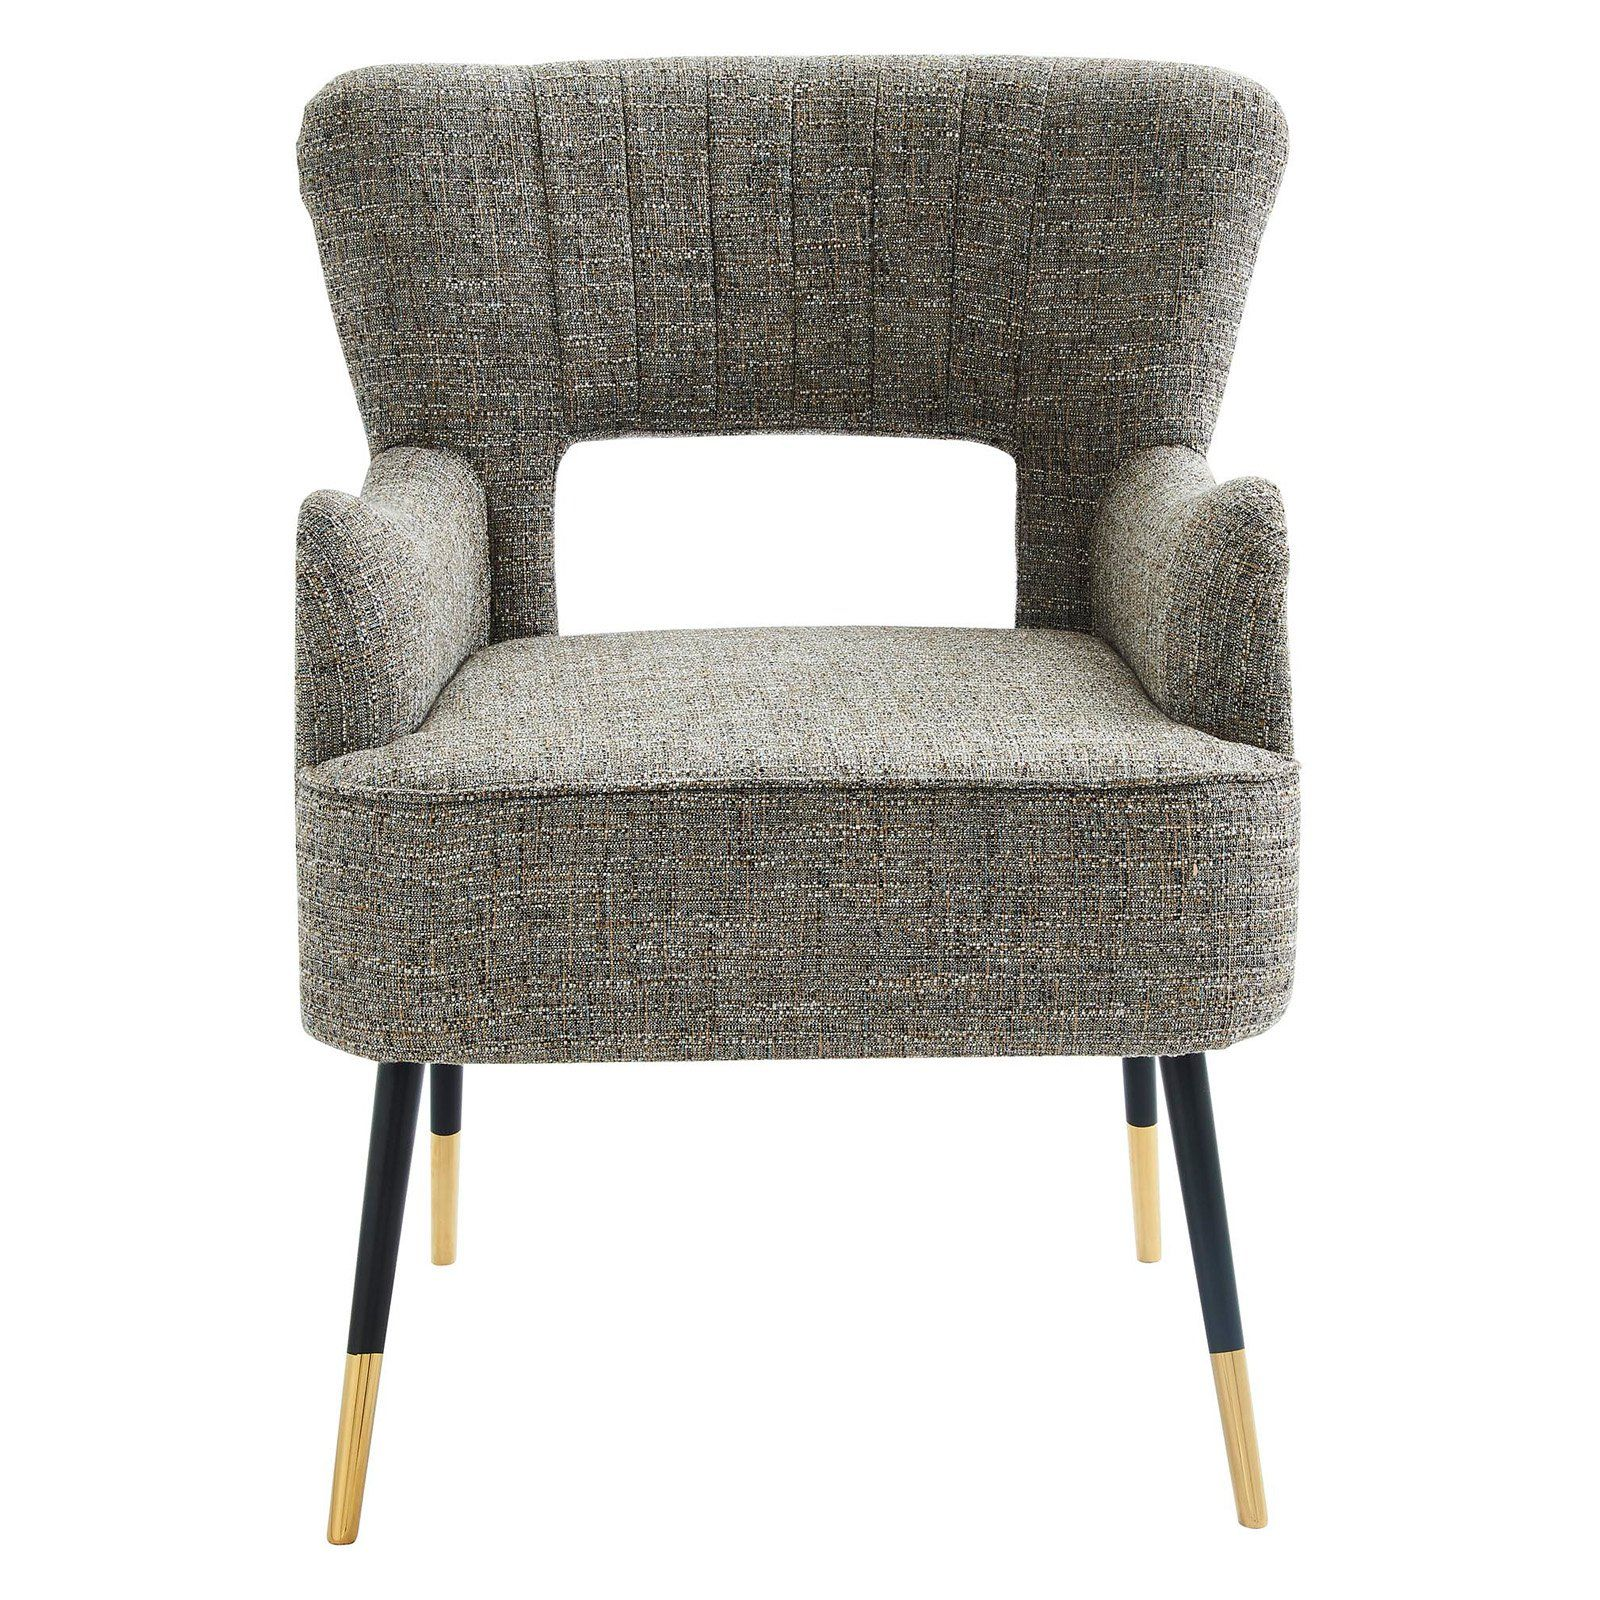 Admirable Nspire Mid Century Cut Out Accent Chair Gray In 2019 Pabps2019 Chair Design Images Pabps2019Com